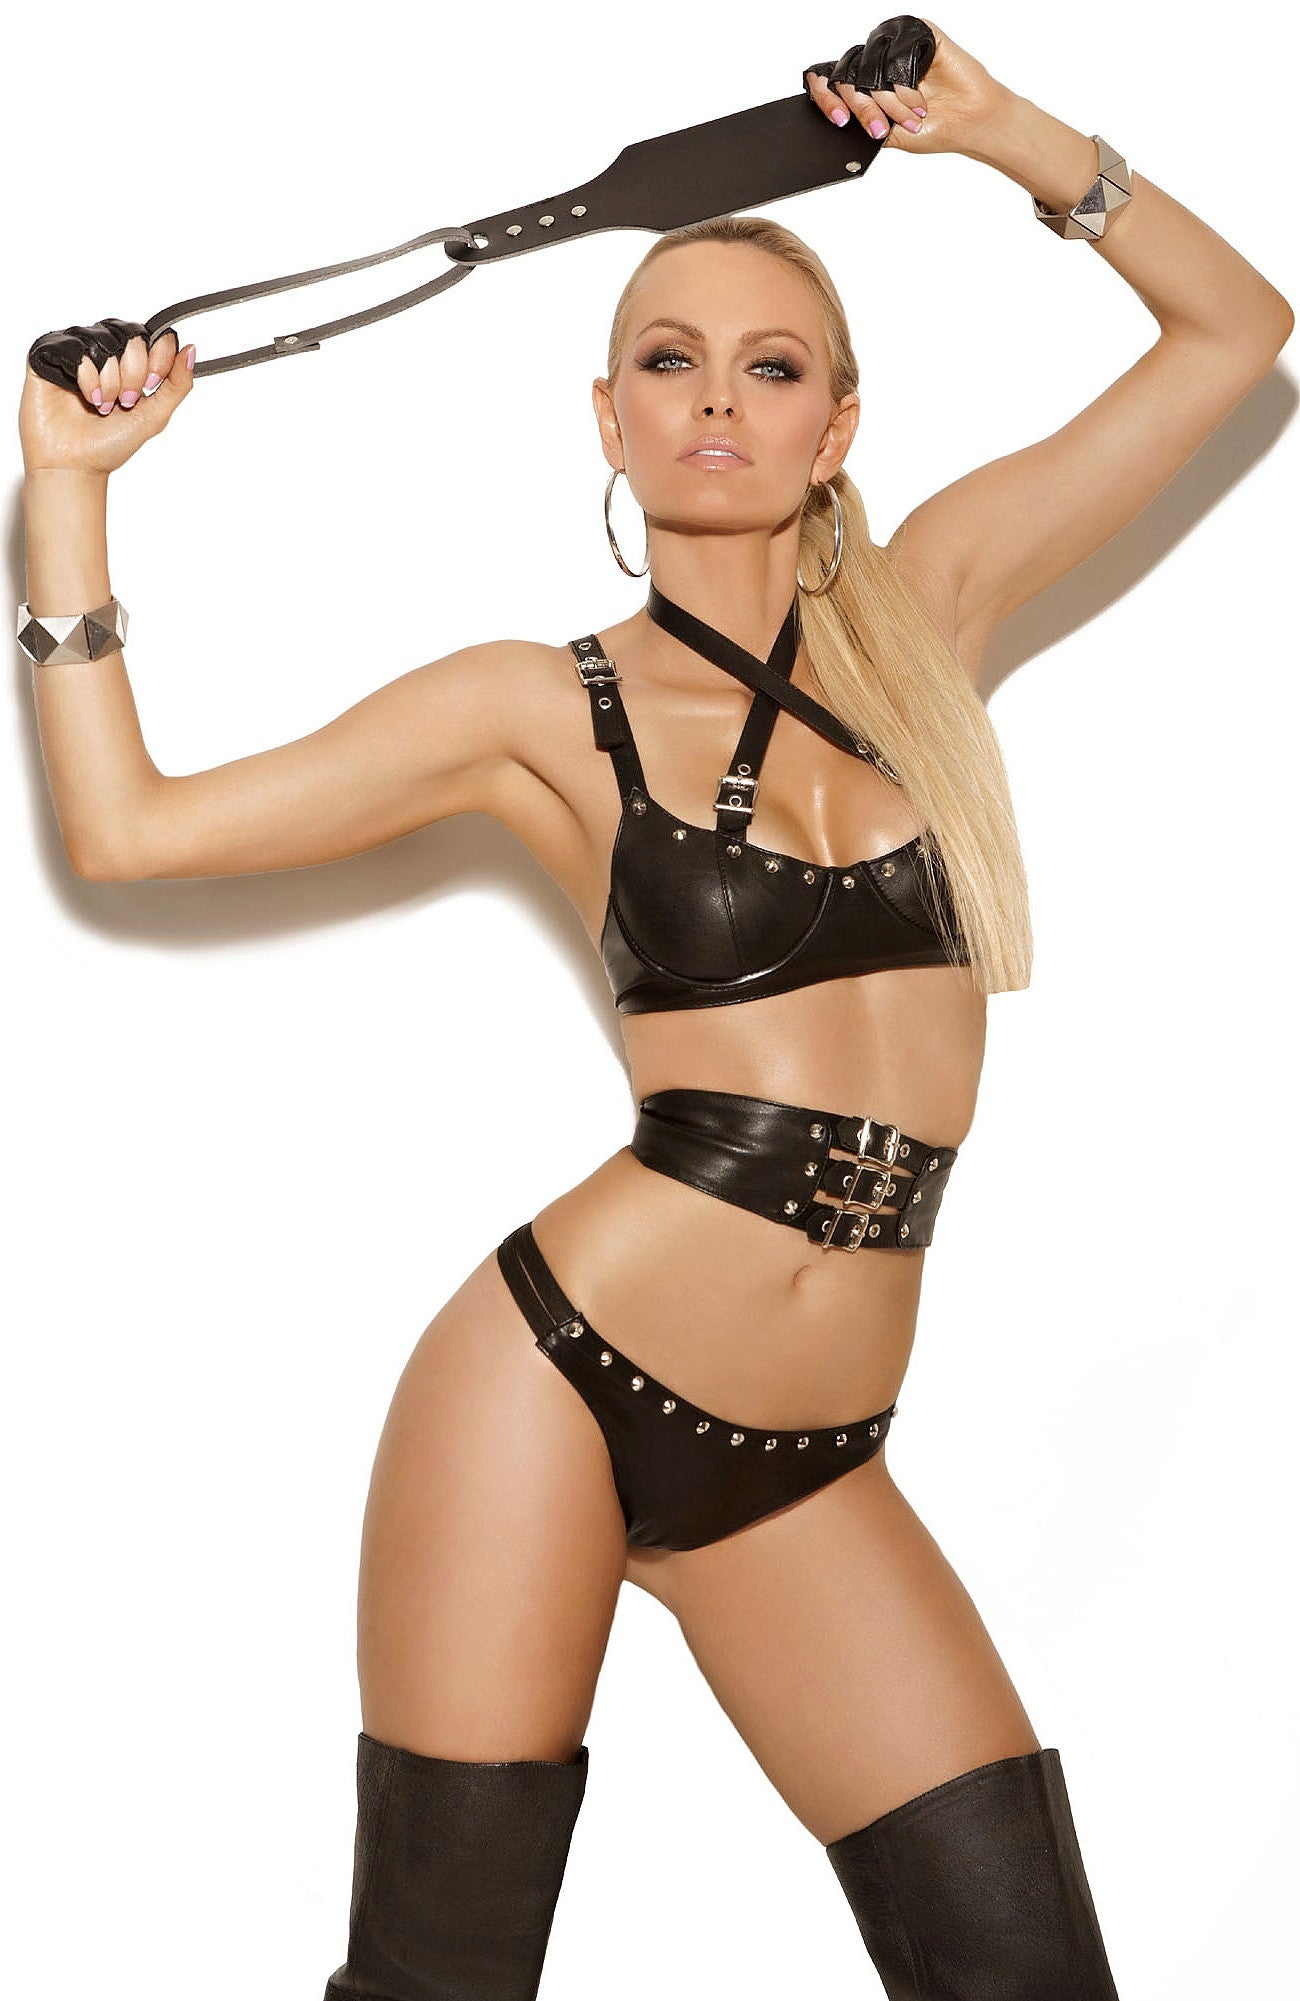 L1940 Leather bra set - Sexylingerieland